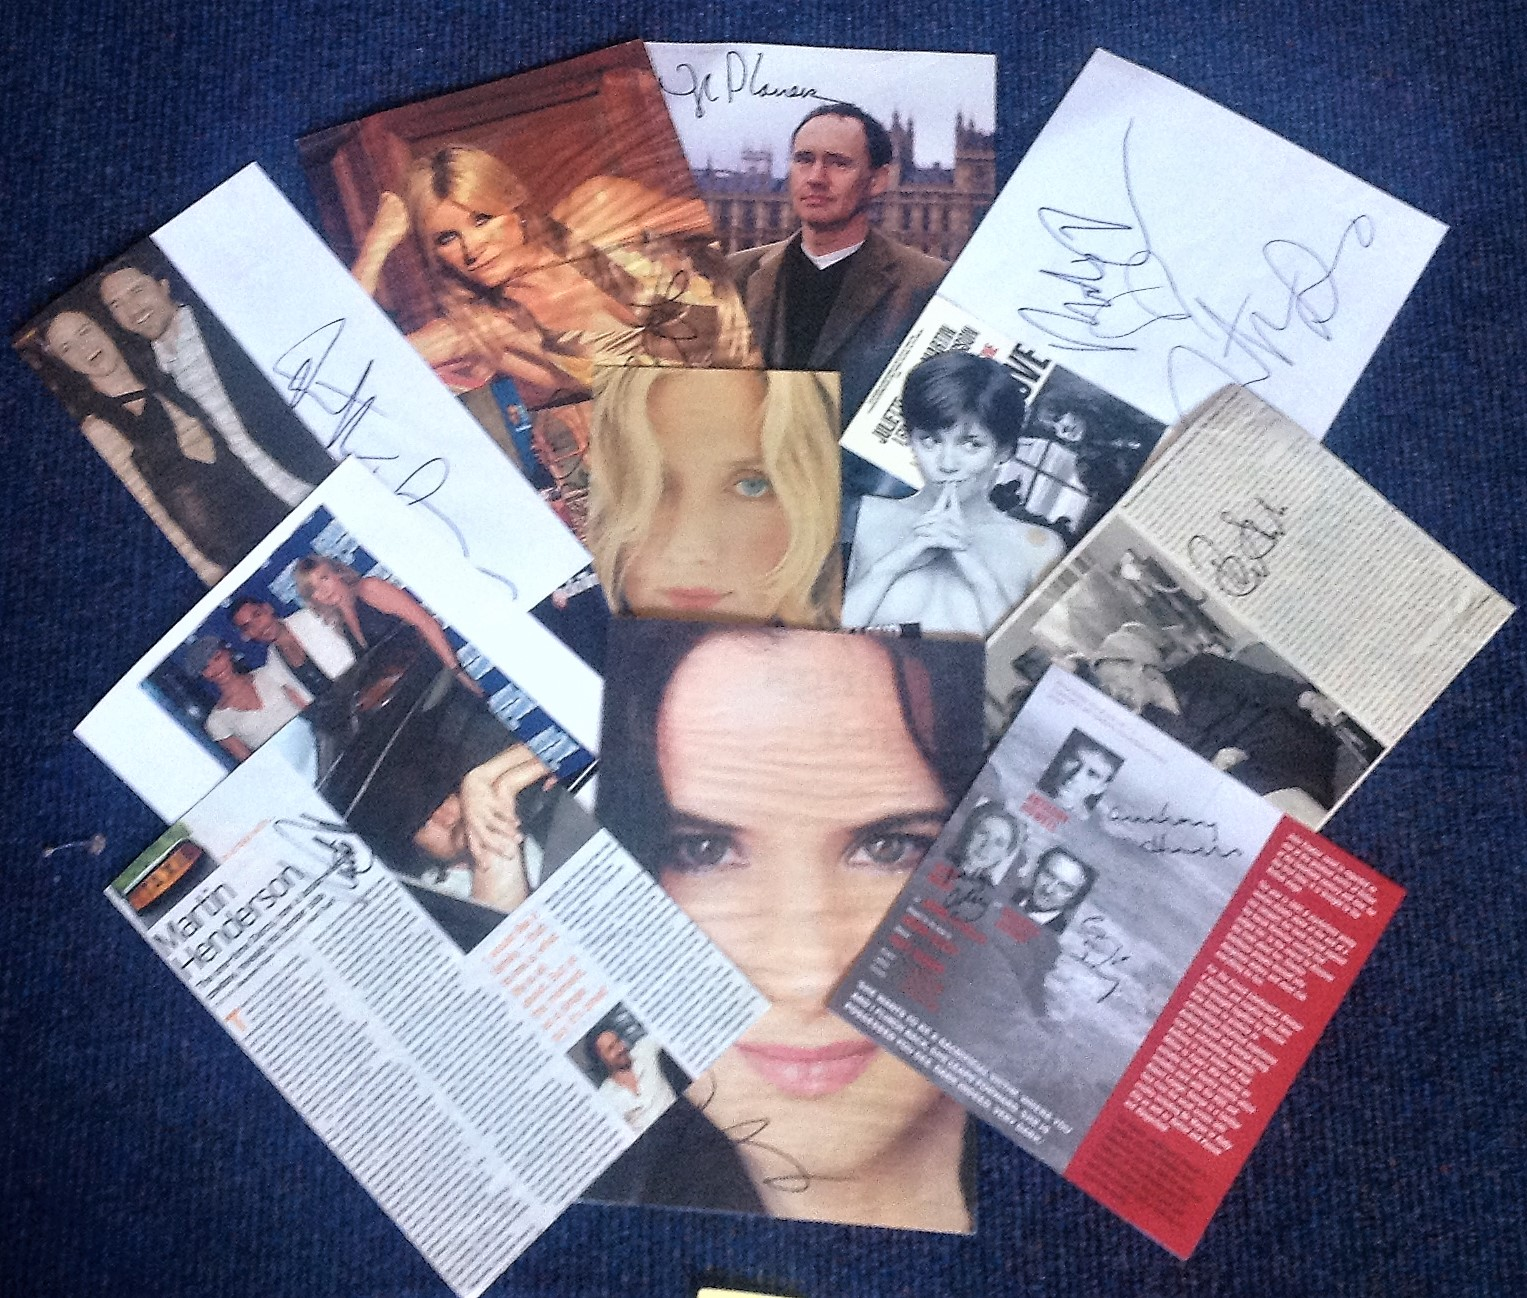 Lot 22 - Assorted TV/film signed collection. 1 items. Variety of flyers and newspaper photos all signed. Some